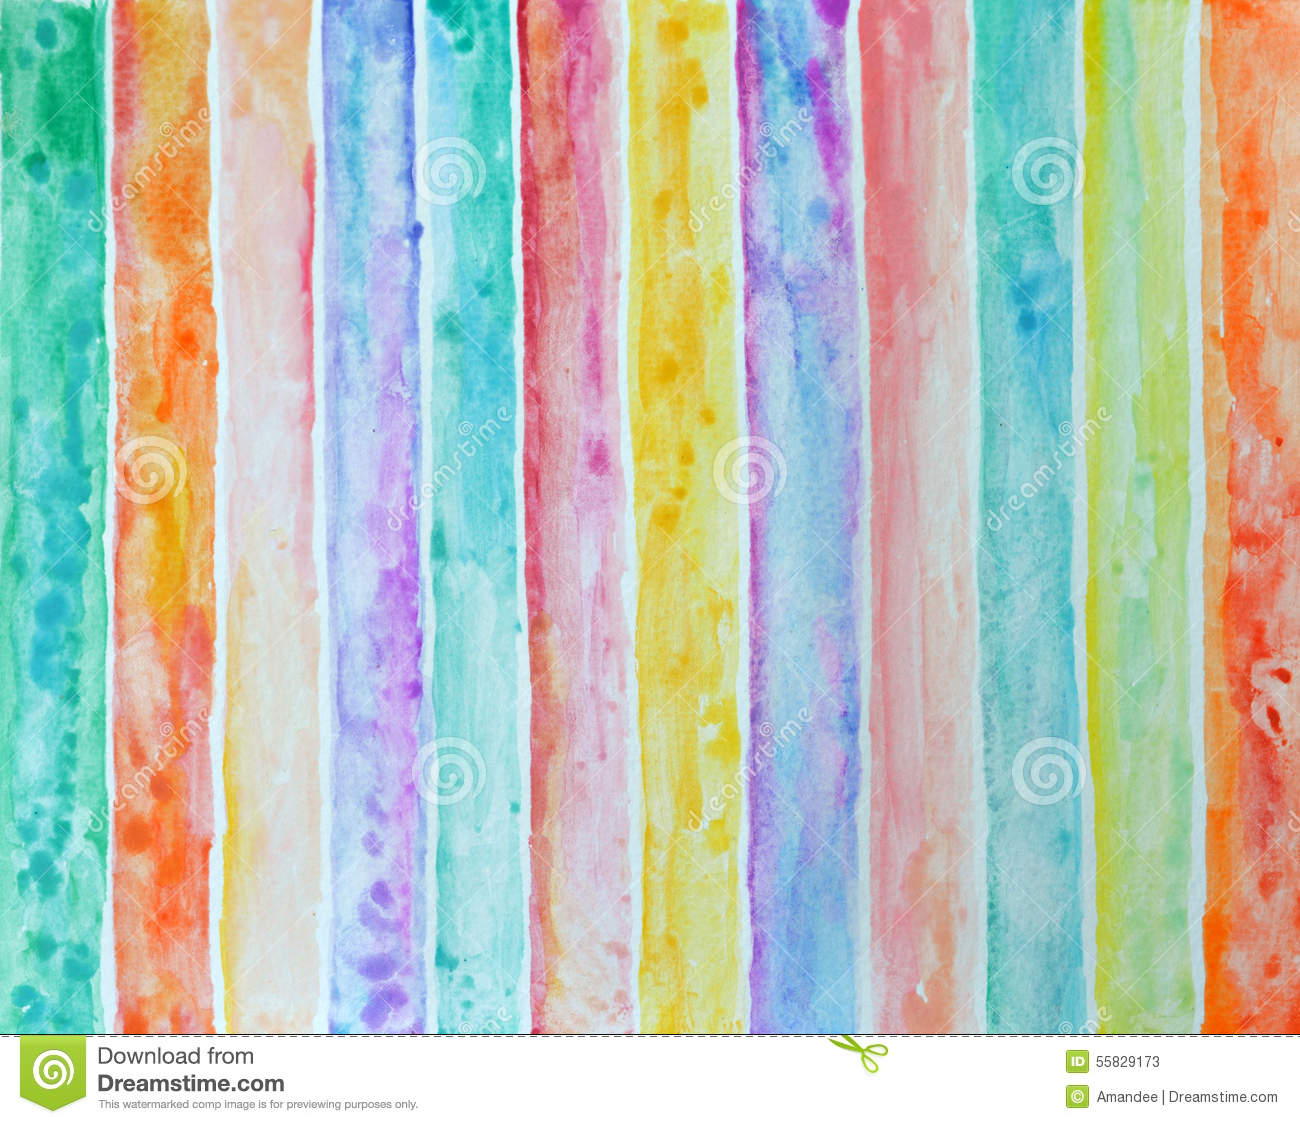 Blue purple gold abstract background design template royalty free - Abstract Striped Pattern Background Watercolor Painting